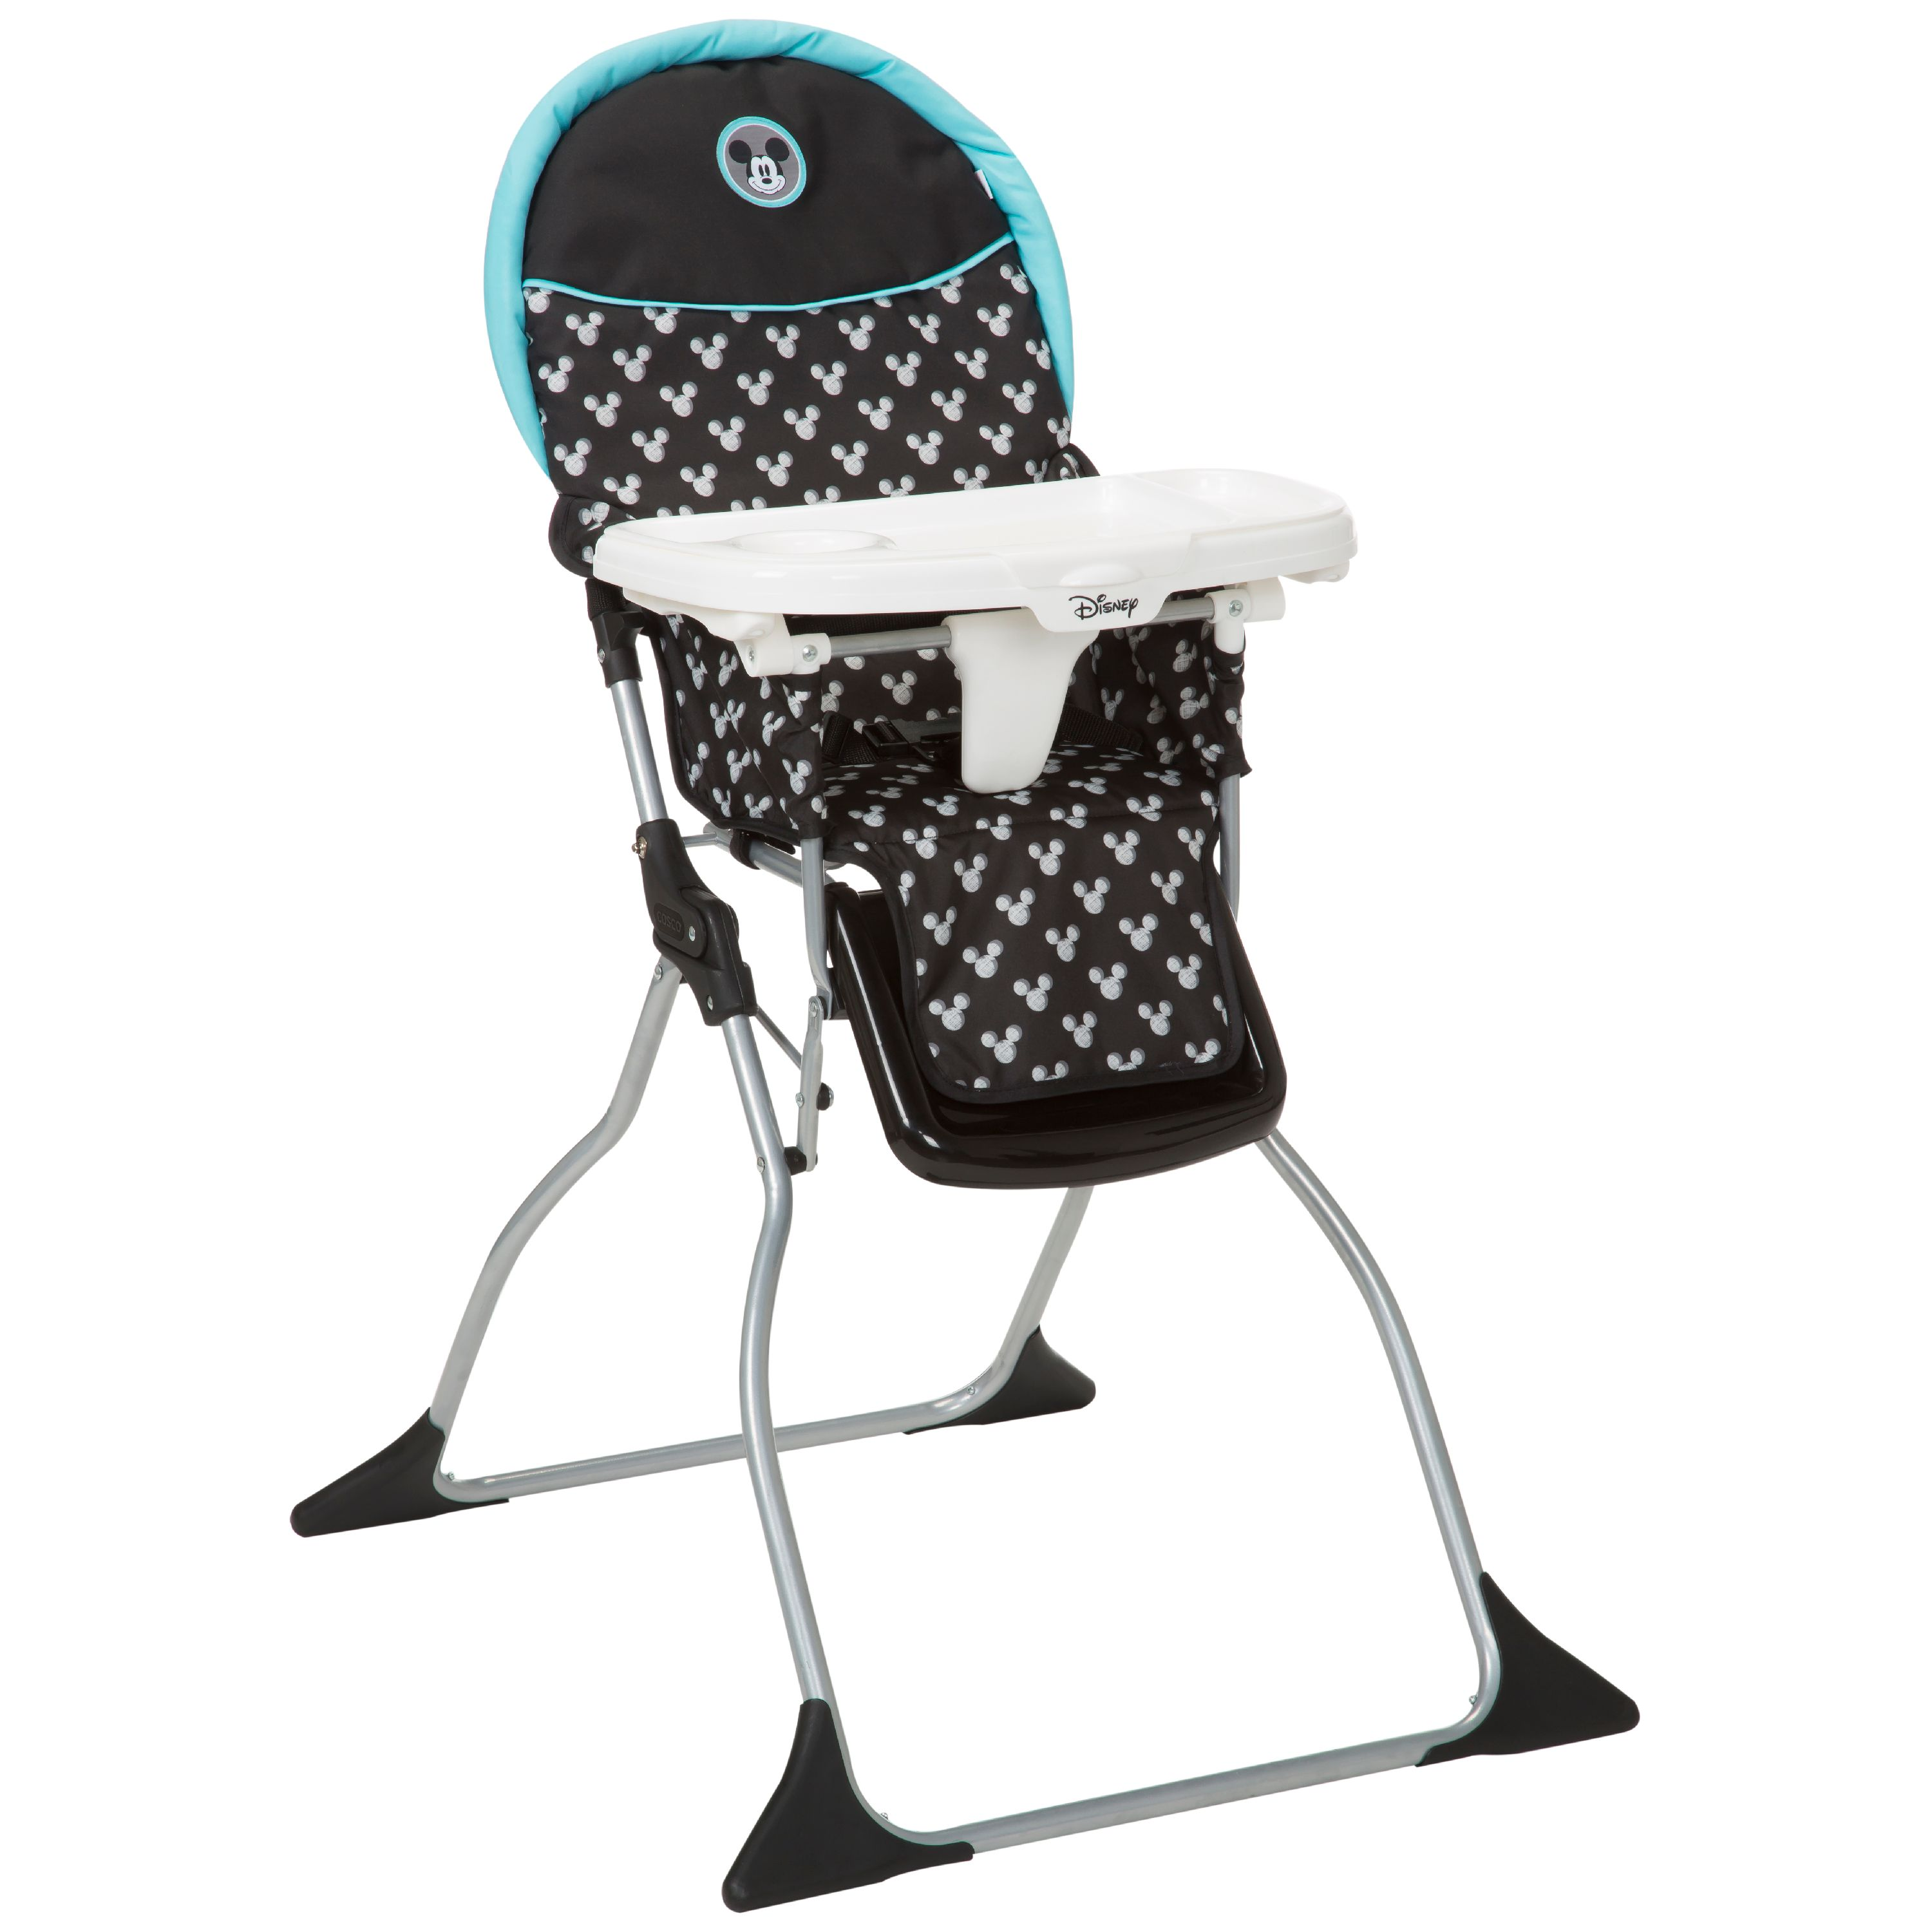 Garden Delight Disney Baby Minnie Mouse Simple Fold Plus High Chair with 3-Position Tray